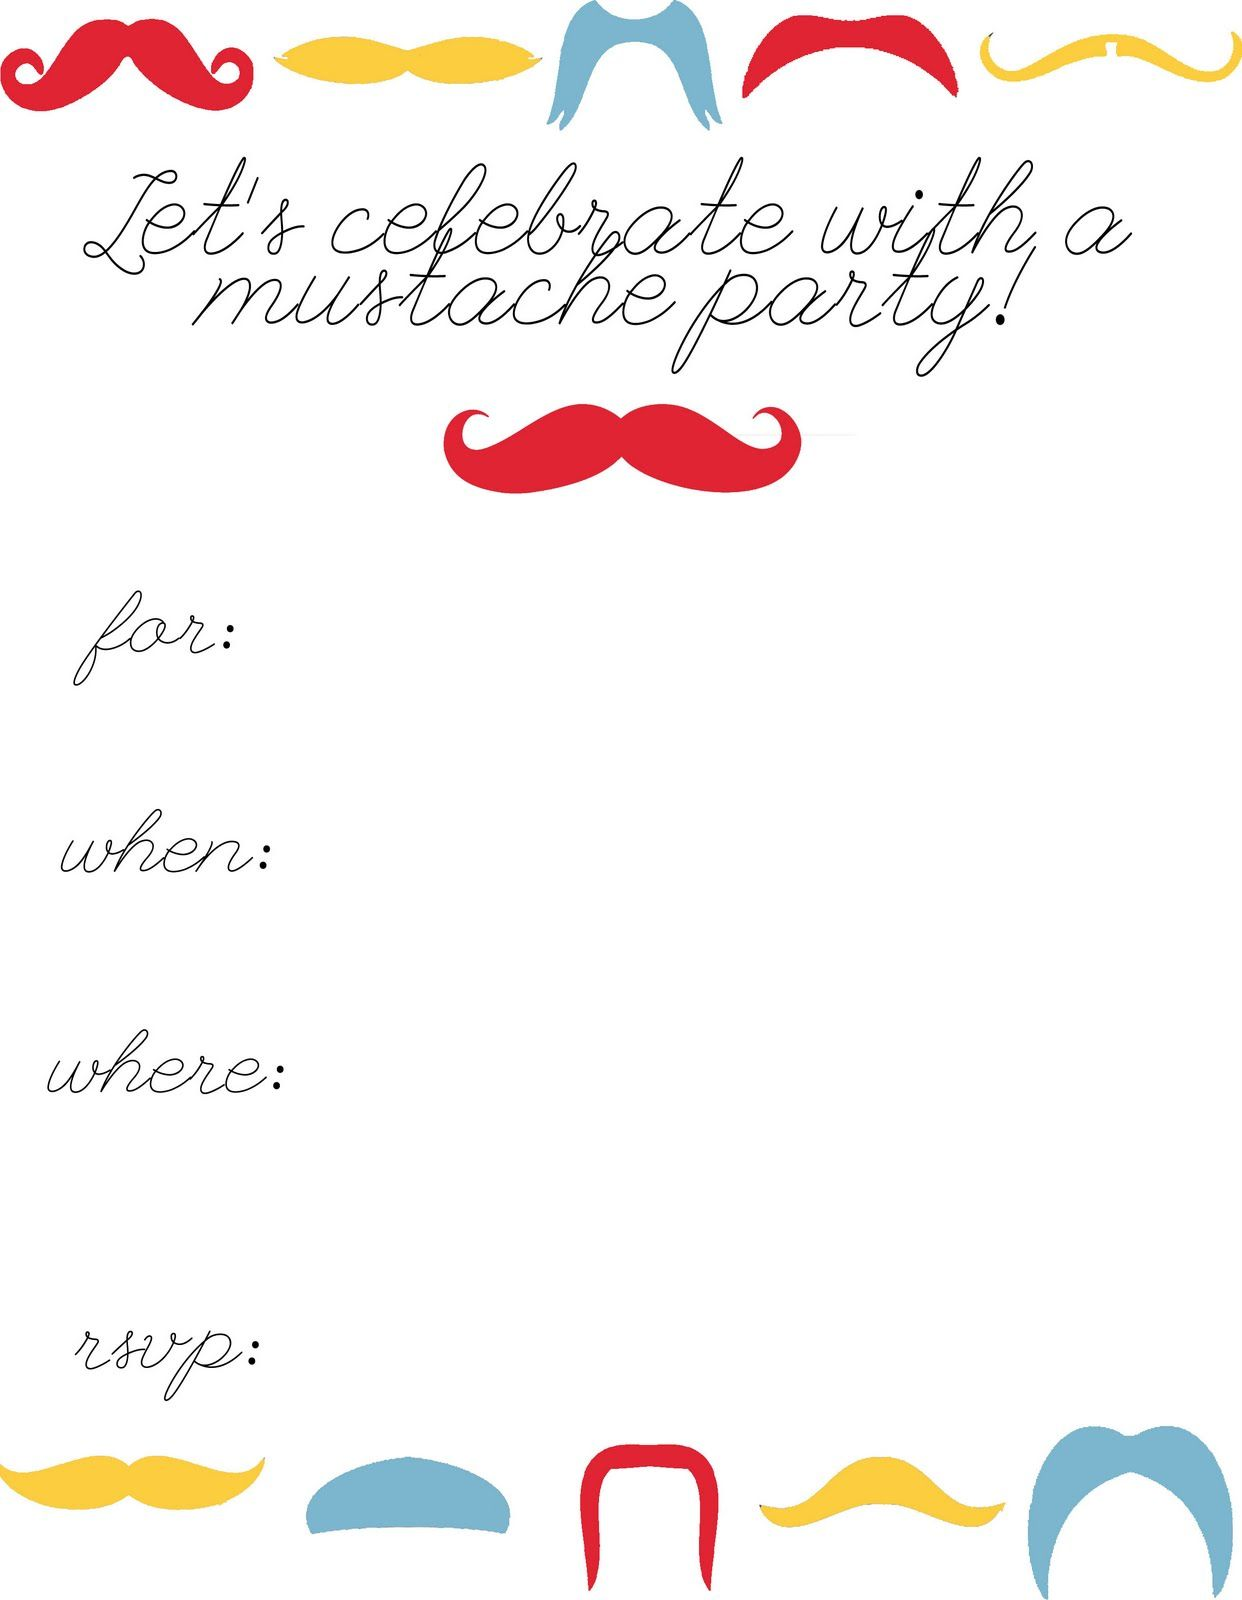 Inside Mustache Party Invitations